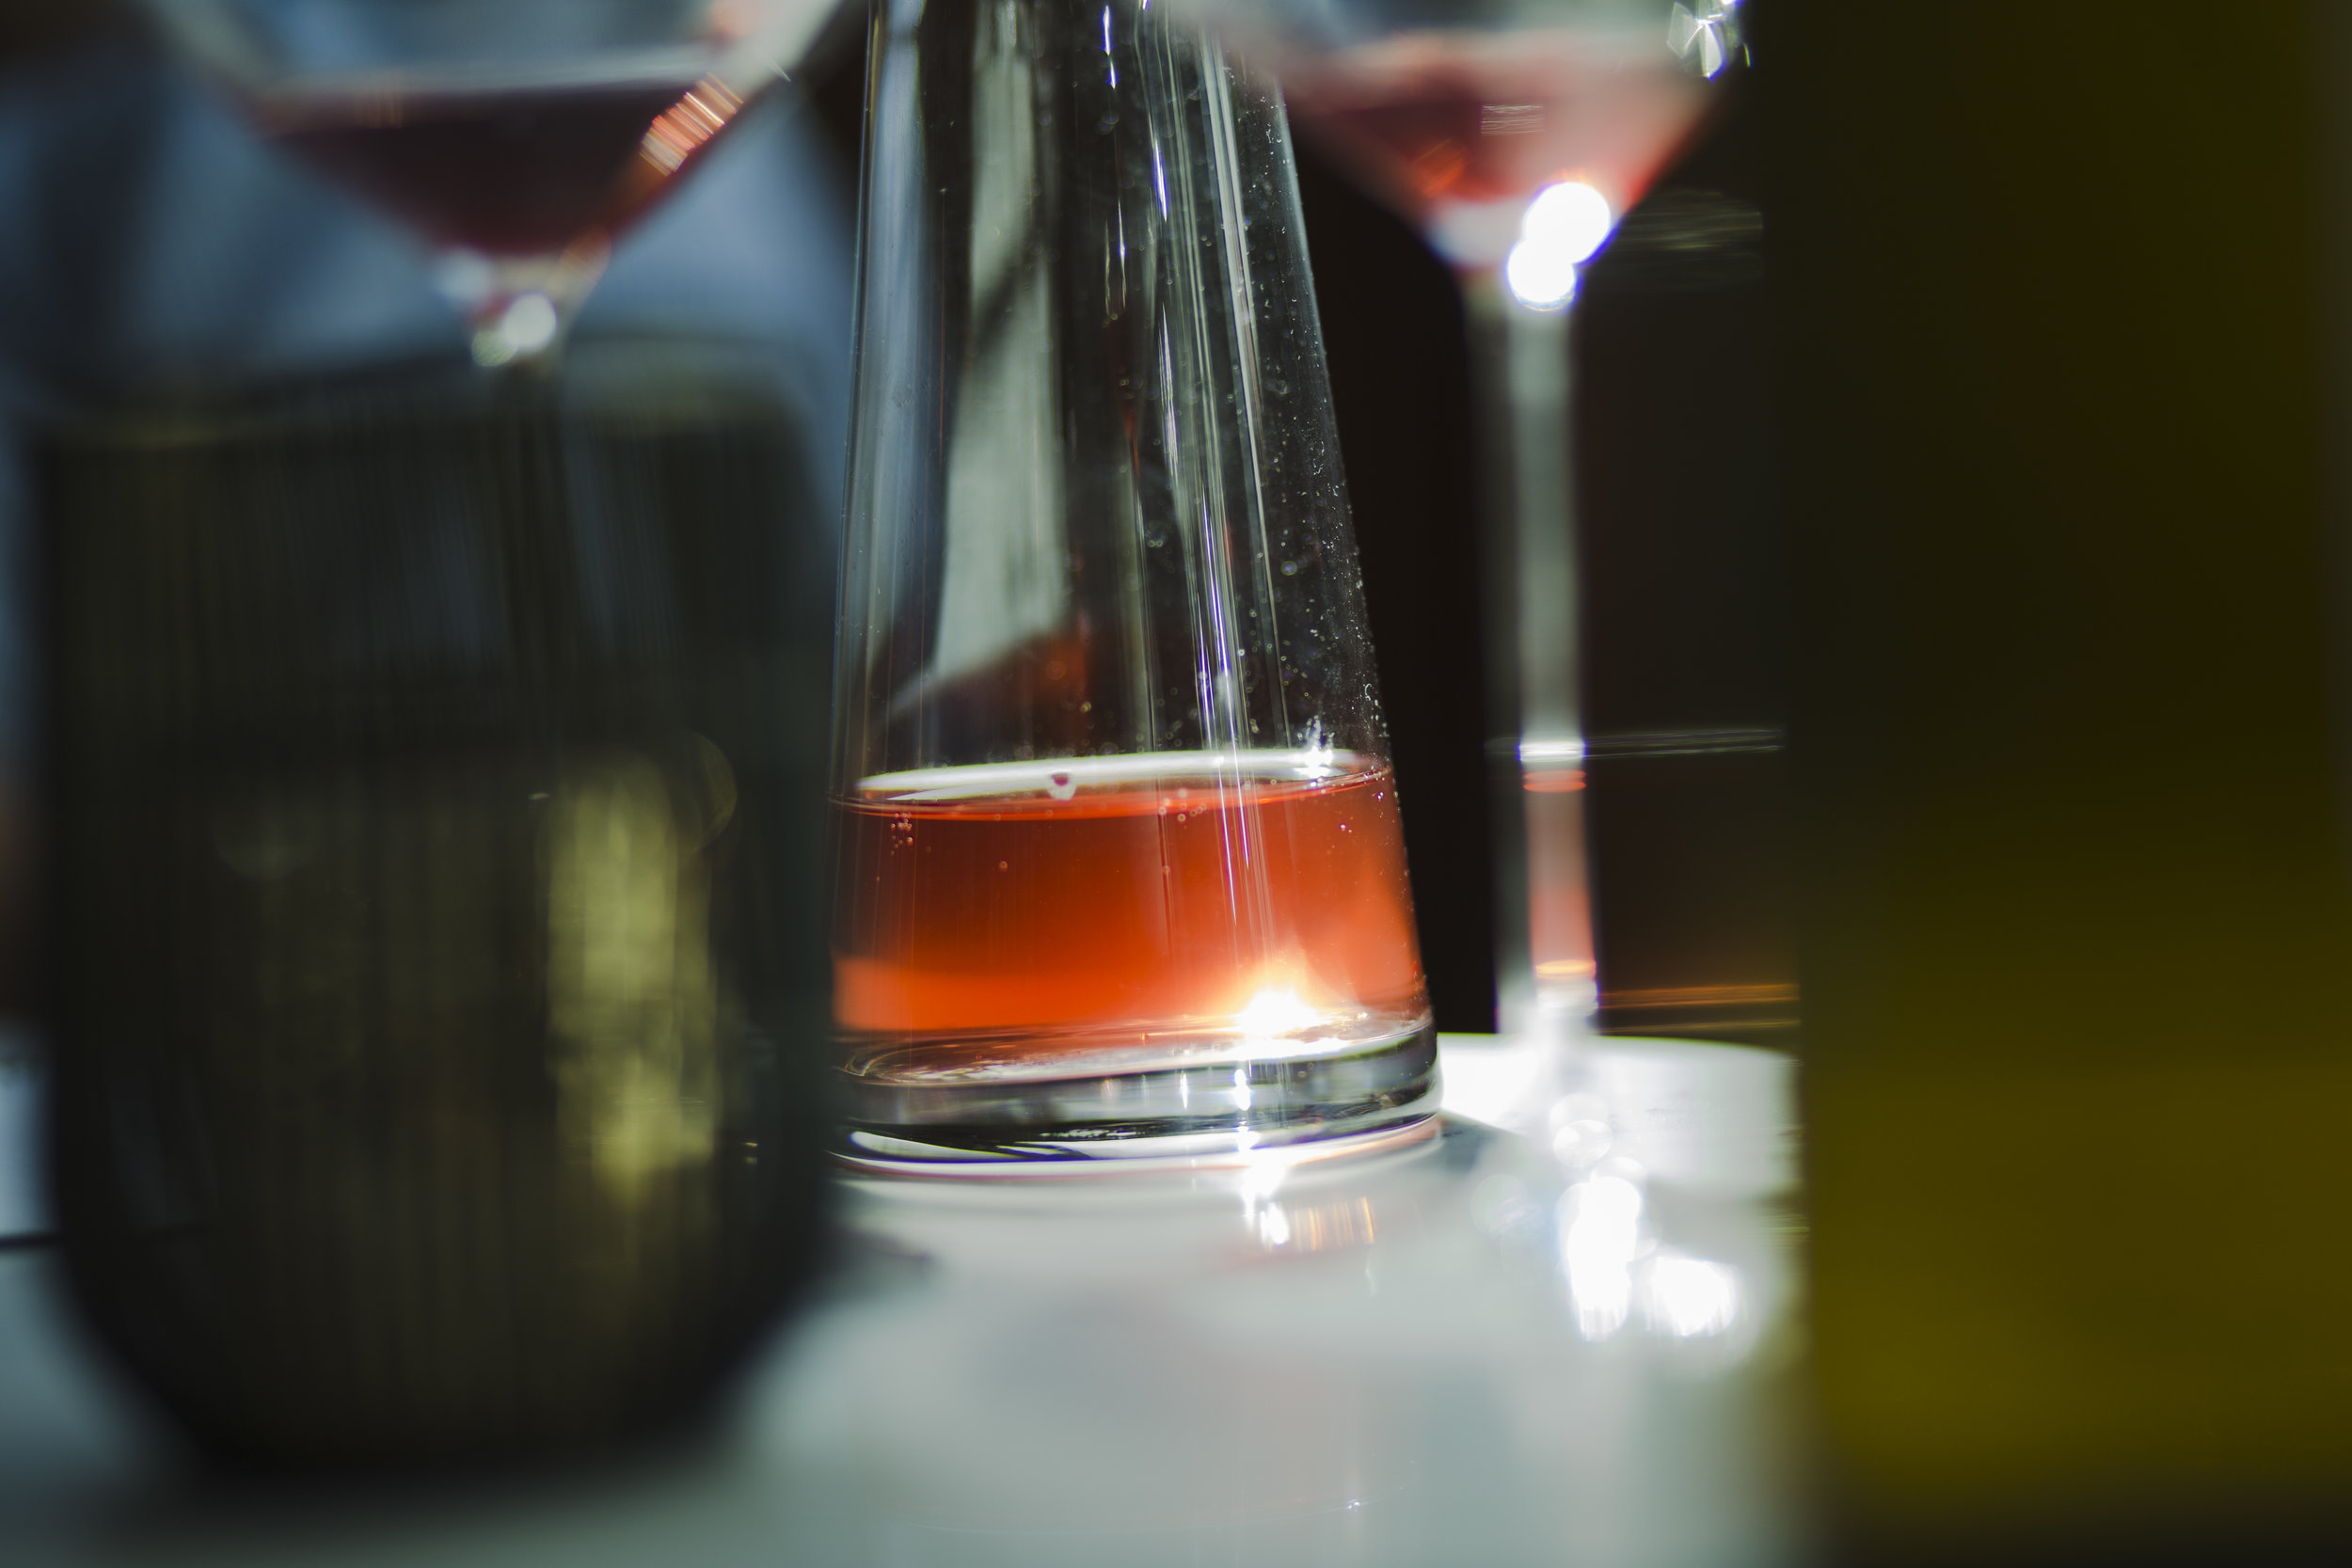 juice - We take immense pride in the fact that our wine list is somewhat like a revolving door. We source small production/natural wines from around the globe: little gems for you to explore and learn about. Afraid of commitments? No problem!  Come explore our